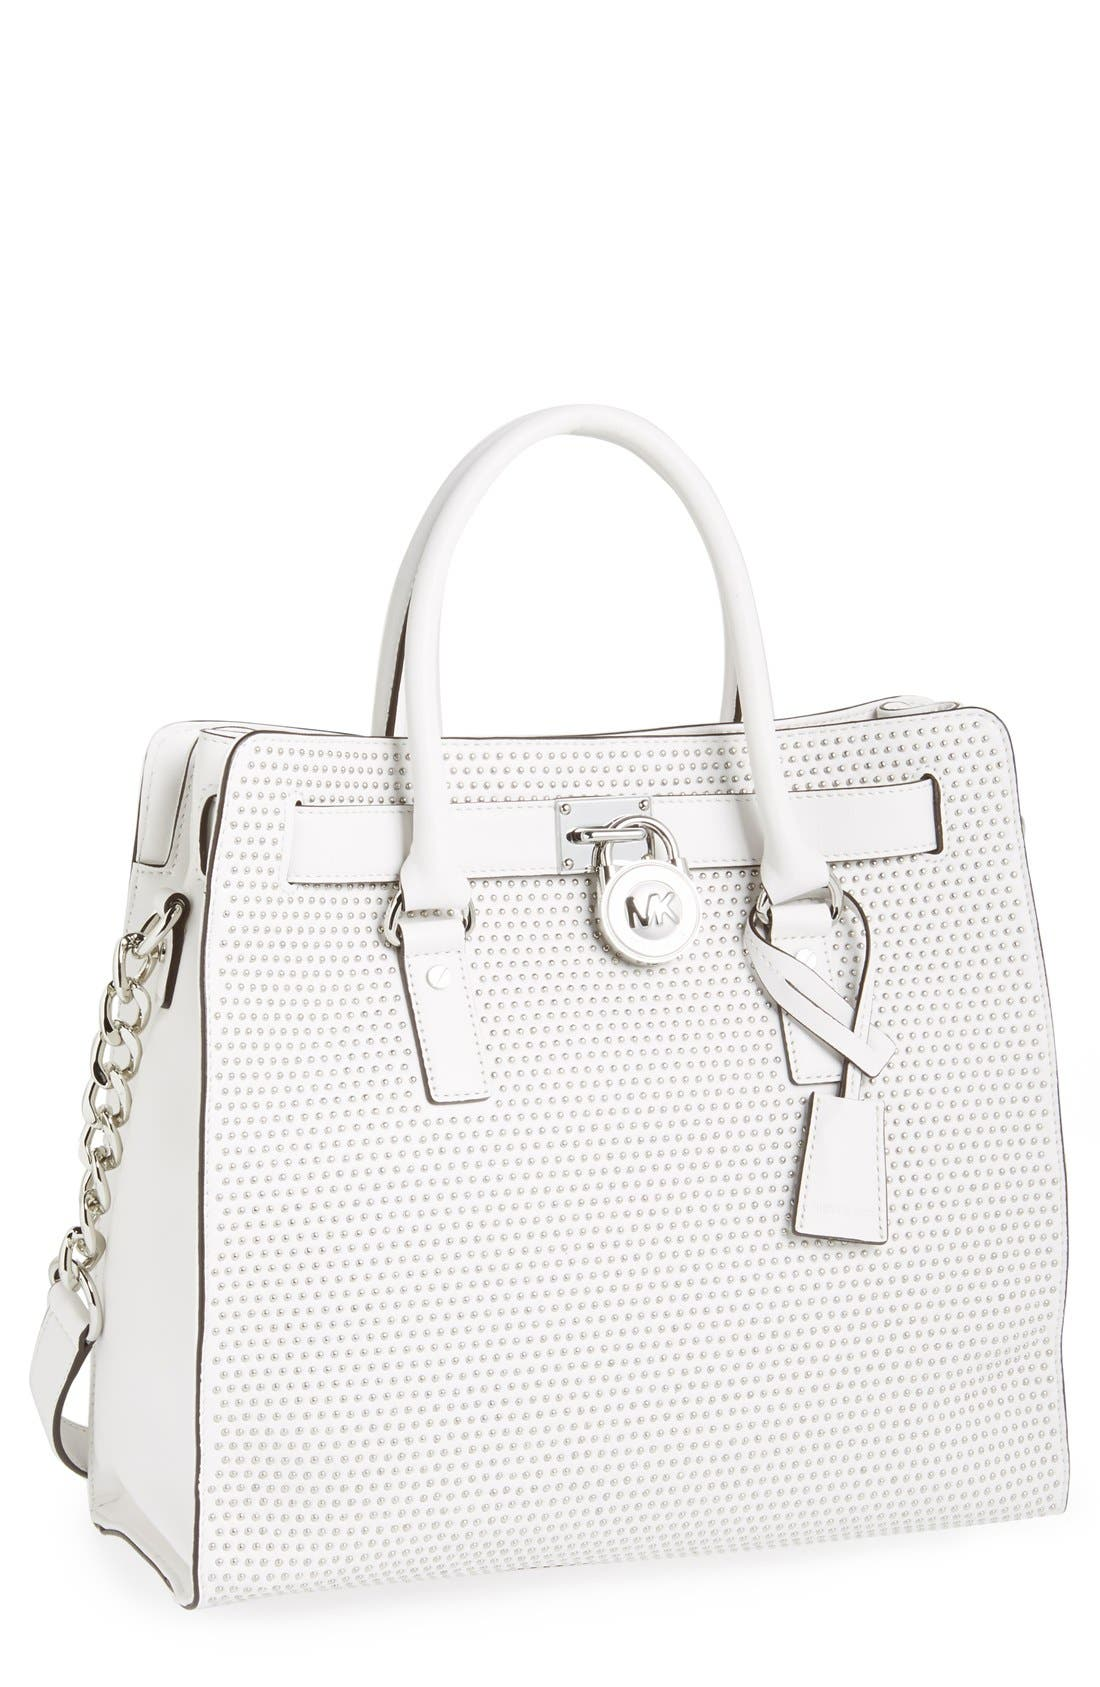 Main Image - MICHAEL Michael Kors 'Large Hamilton - Microstud' Leather Tote